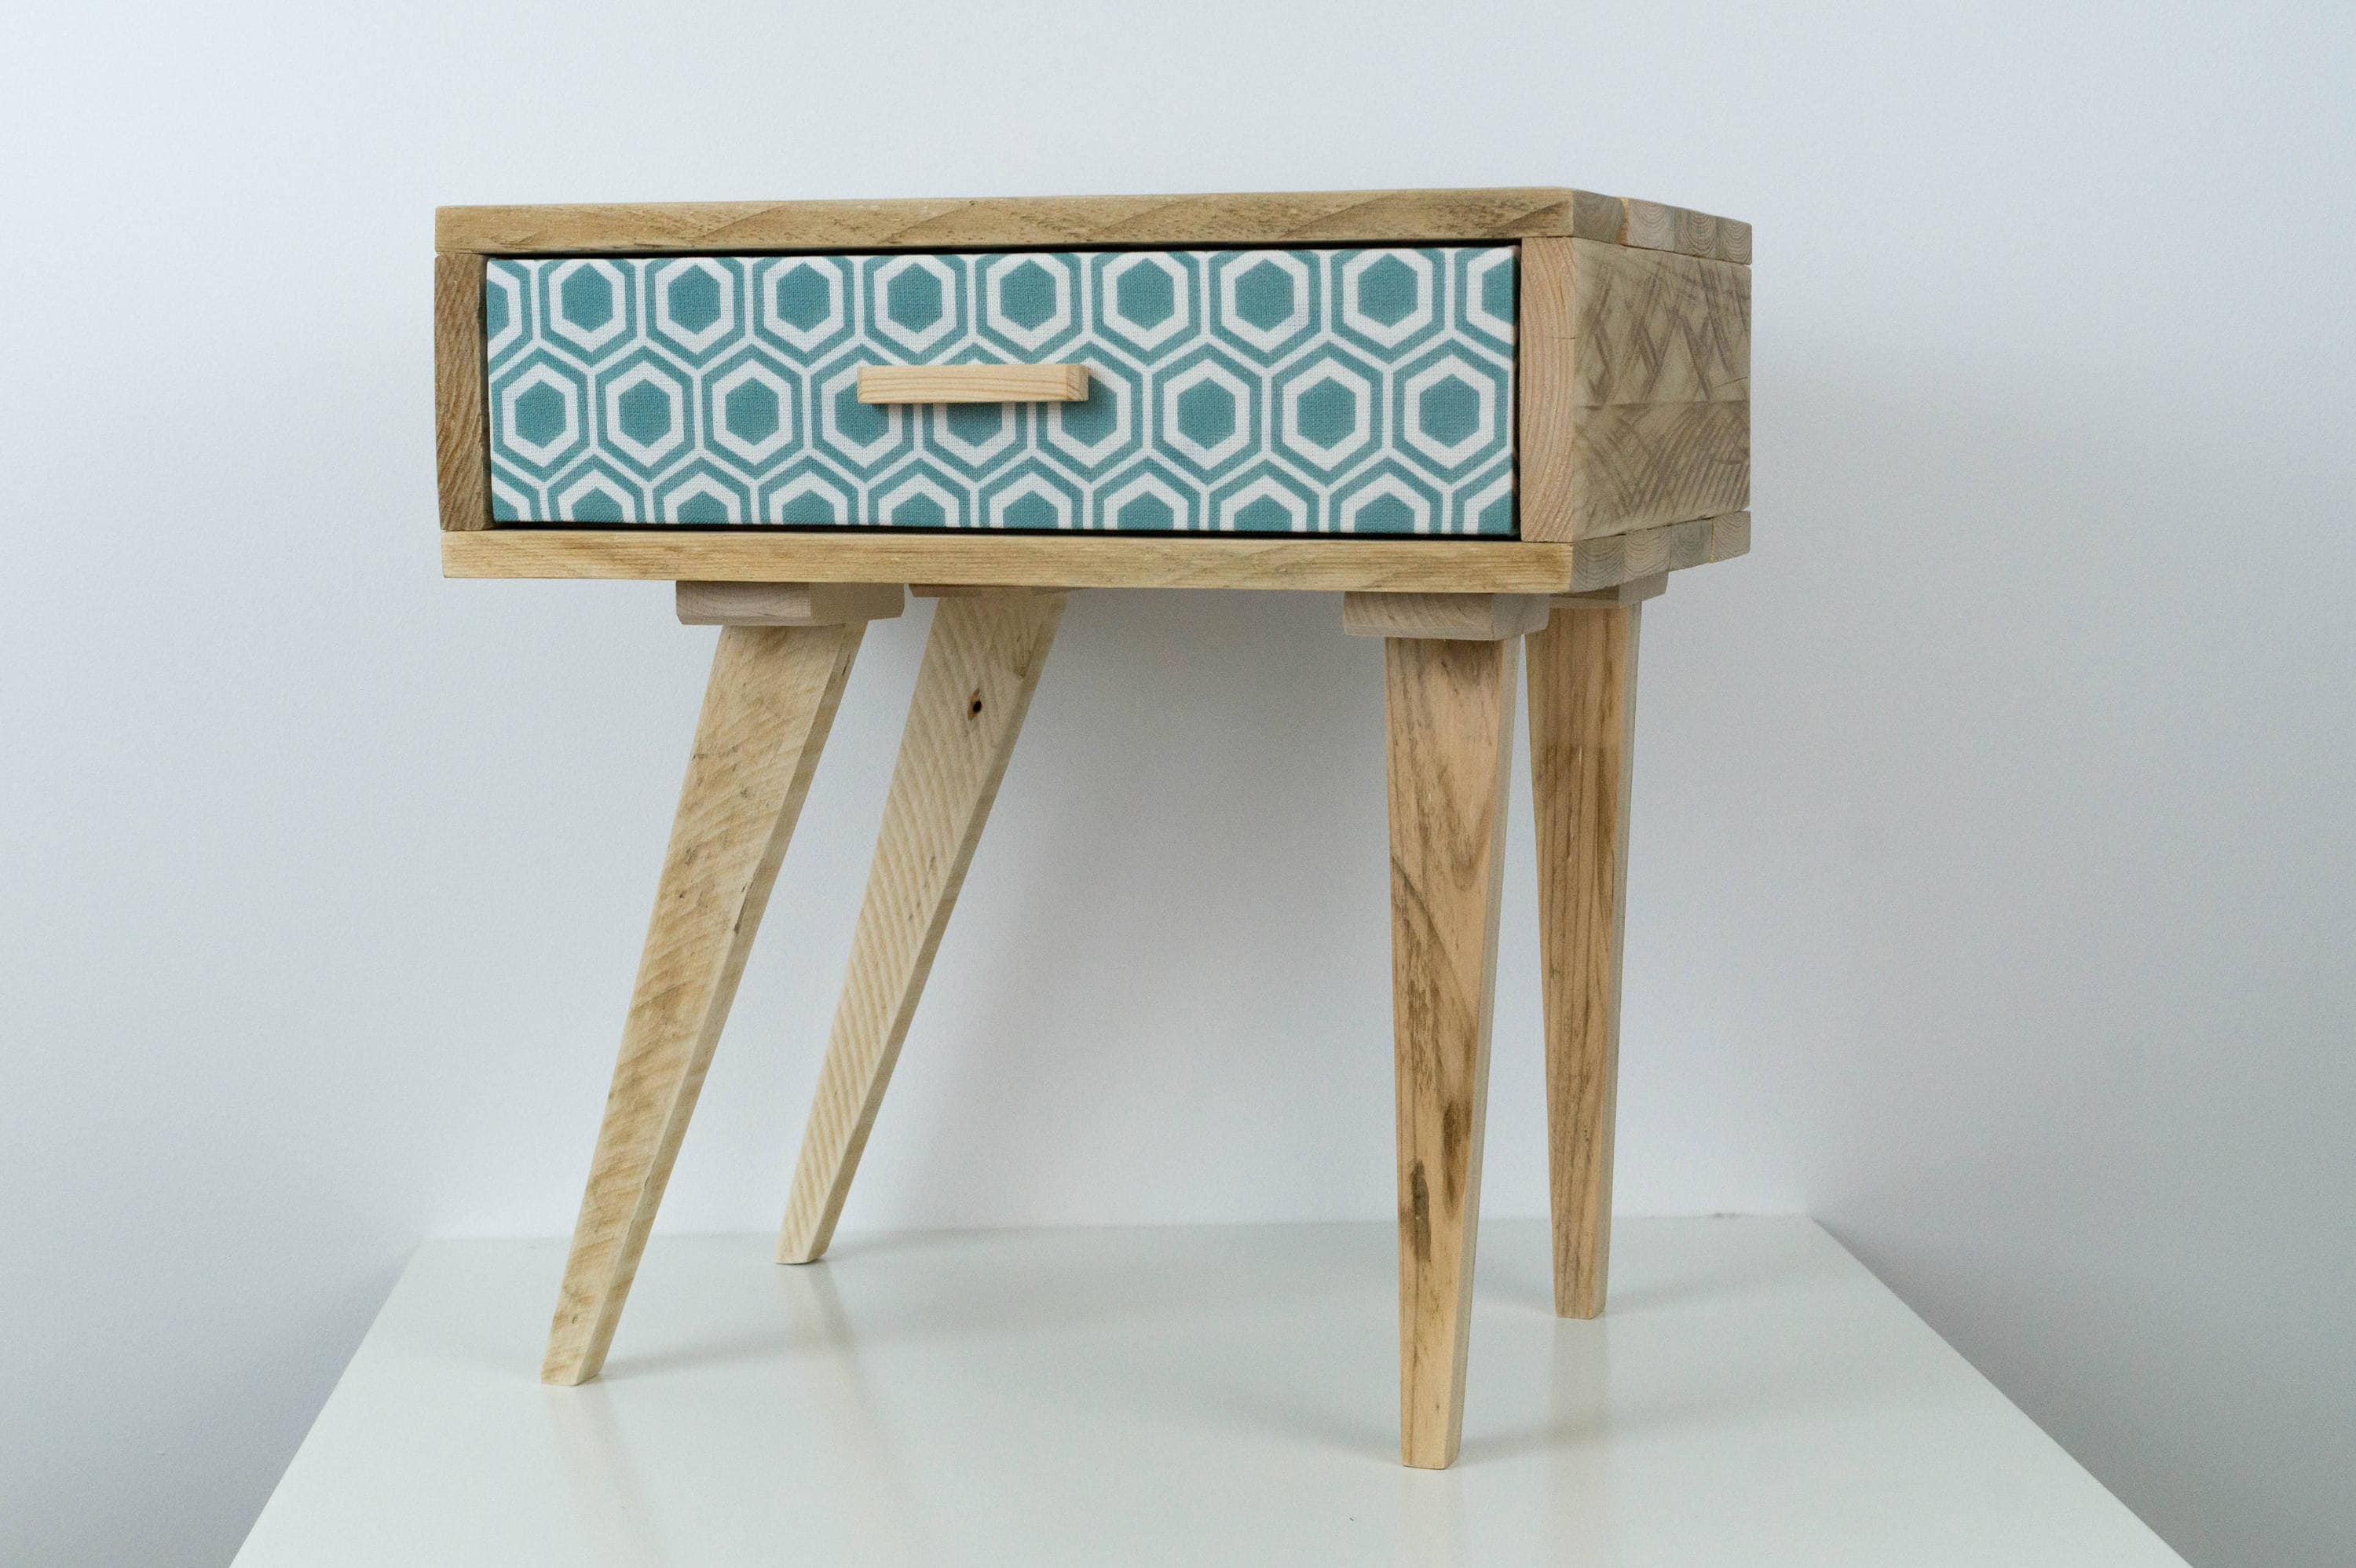 Habiller L Arrière D Un Meuble the asymmetrical night table, table wooden nights, nights in reclaimed wood  table, scandinavian nights, vintage style bedside table